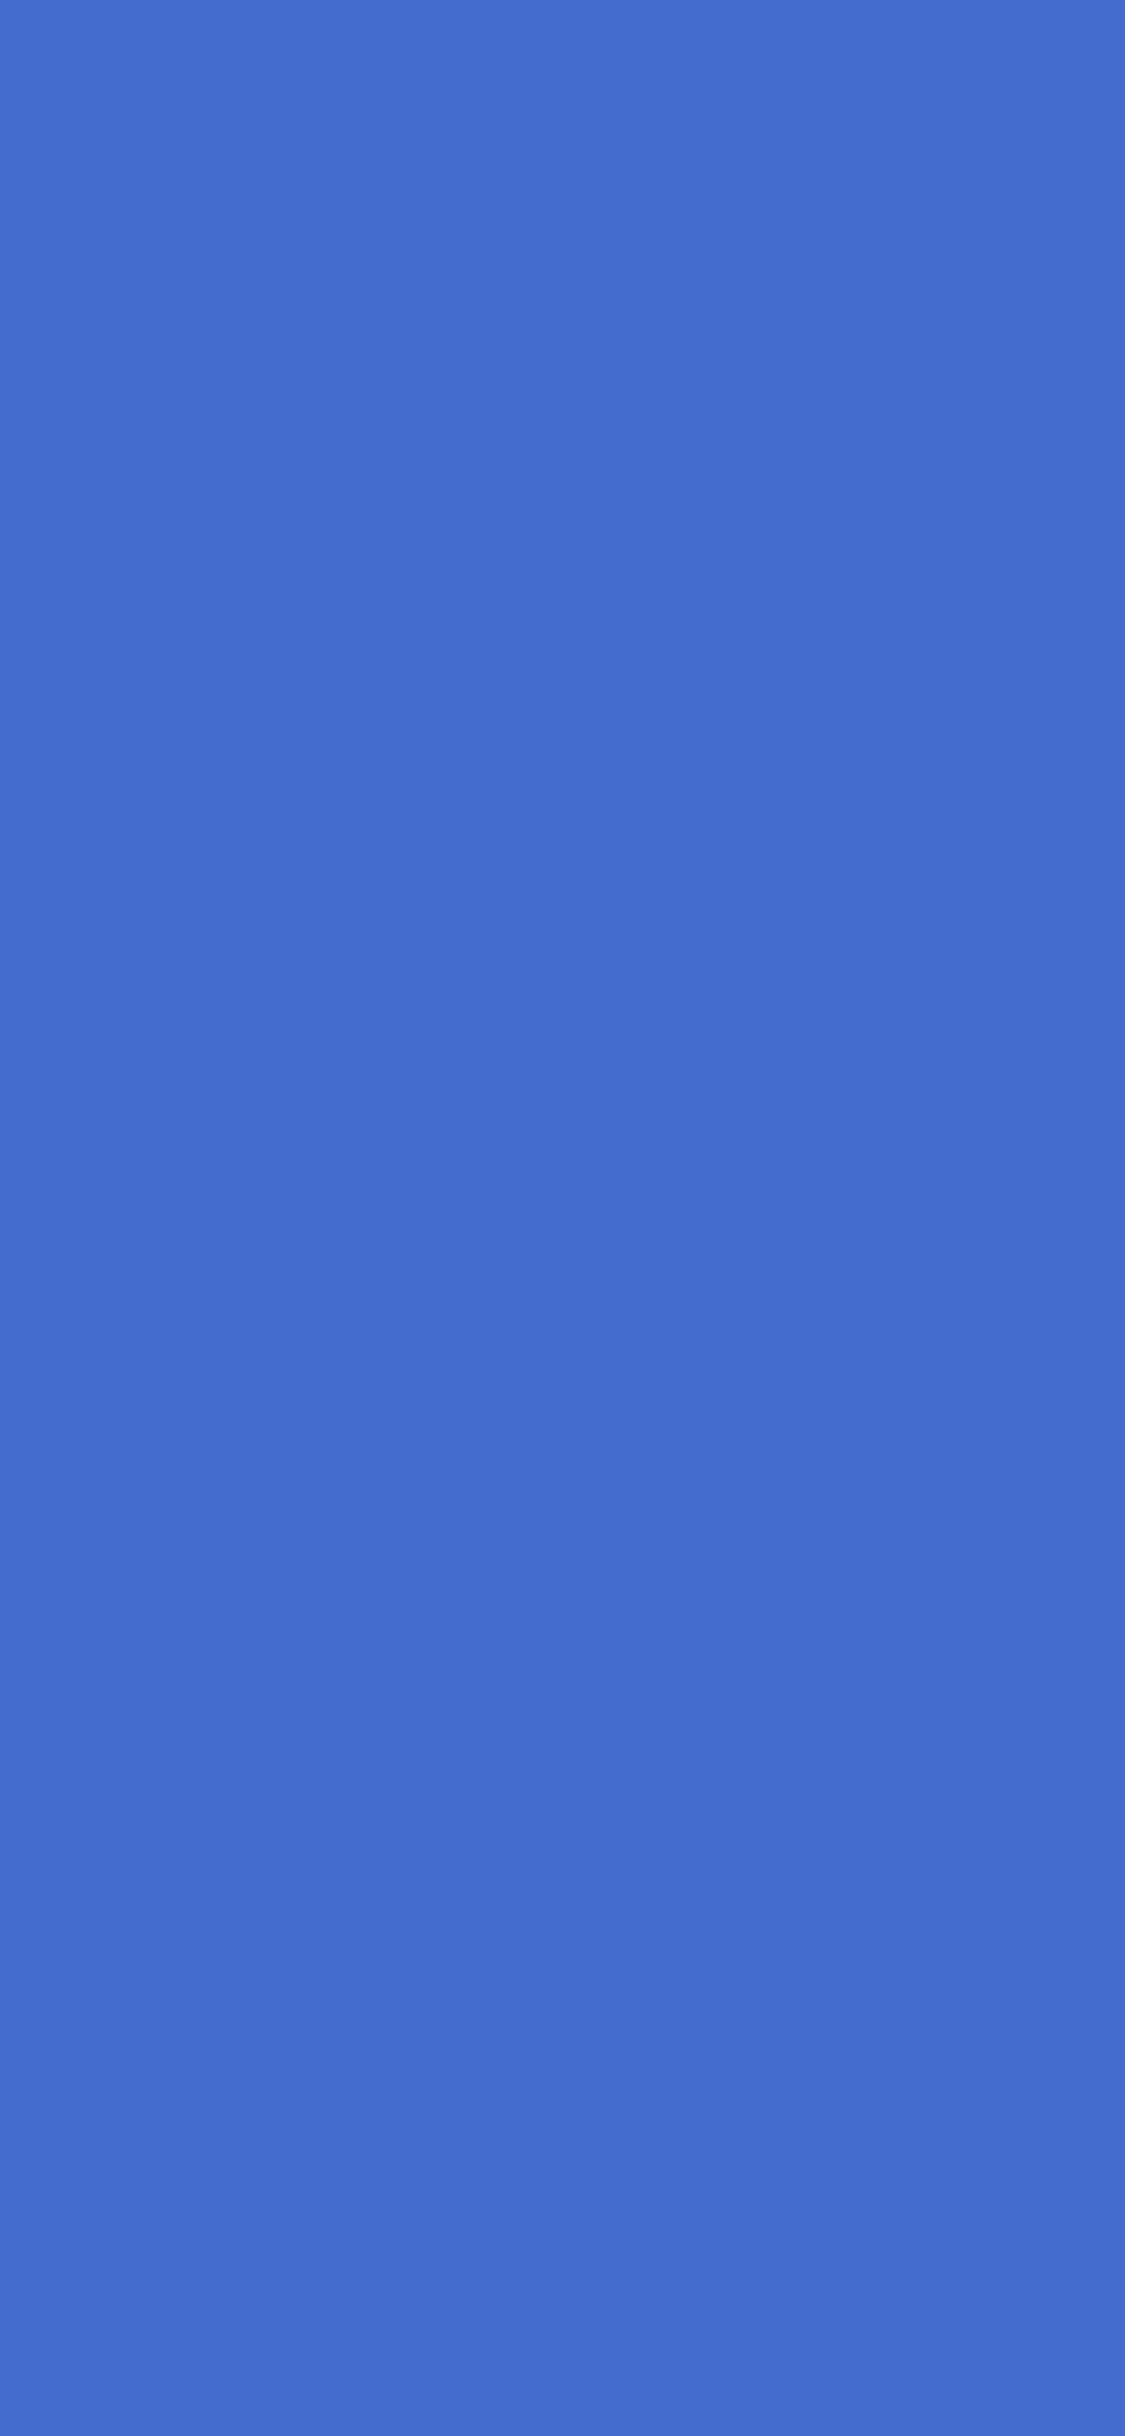 1125x2436 Han Blue Solid Color Background